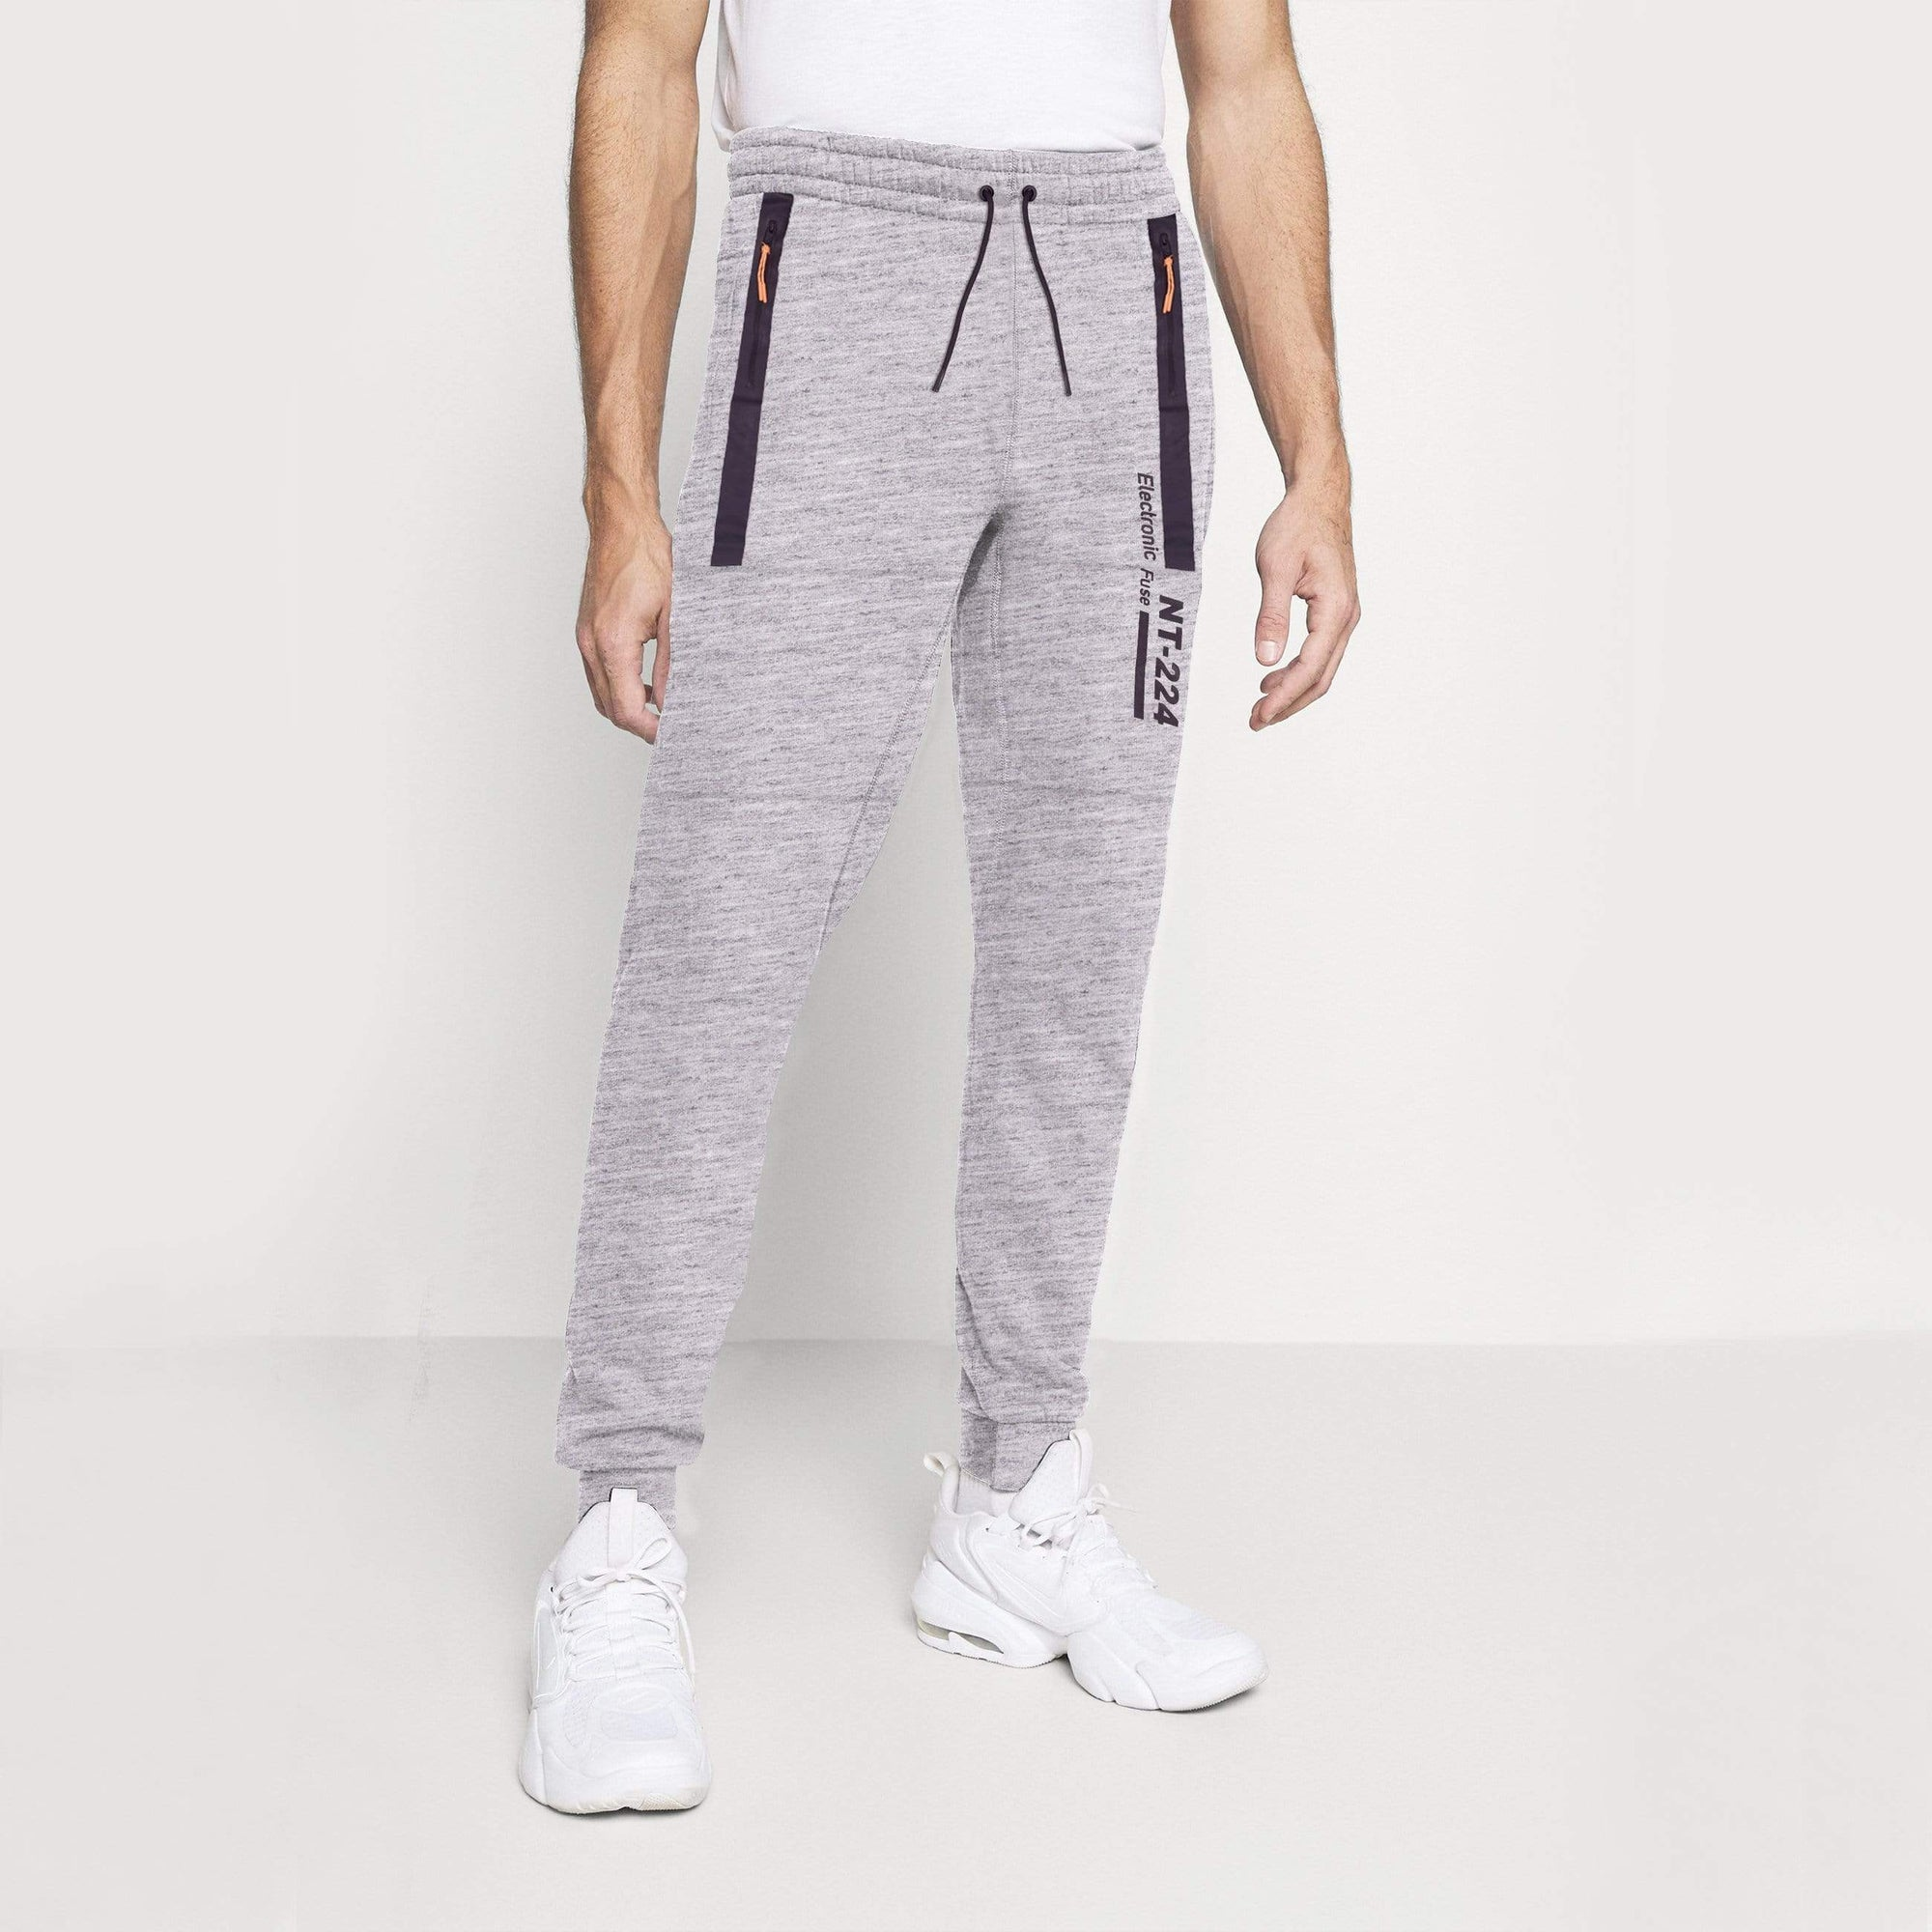 Henry James Men's Sweat Pants Silver Marl / S Men's Henry James Electronic Fuse Sweat Pants